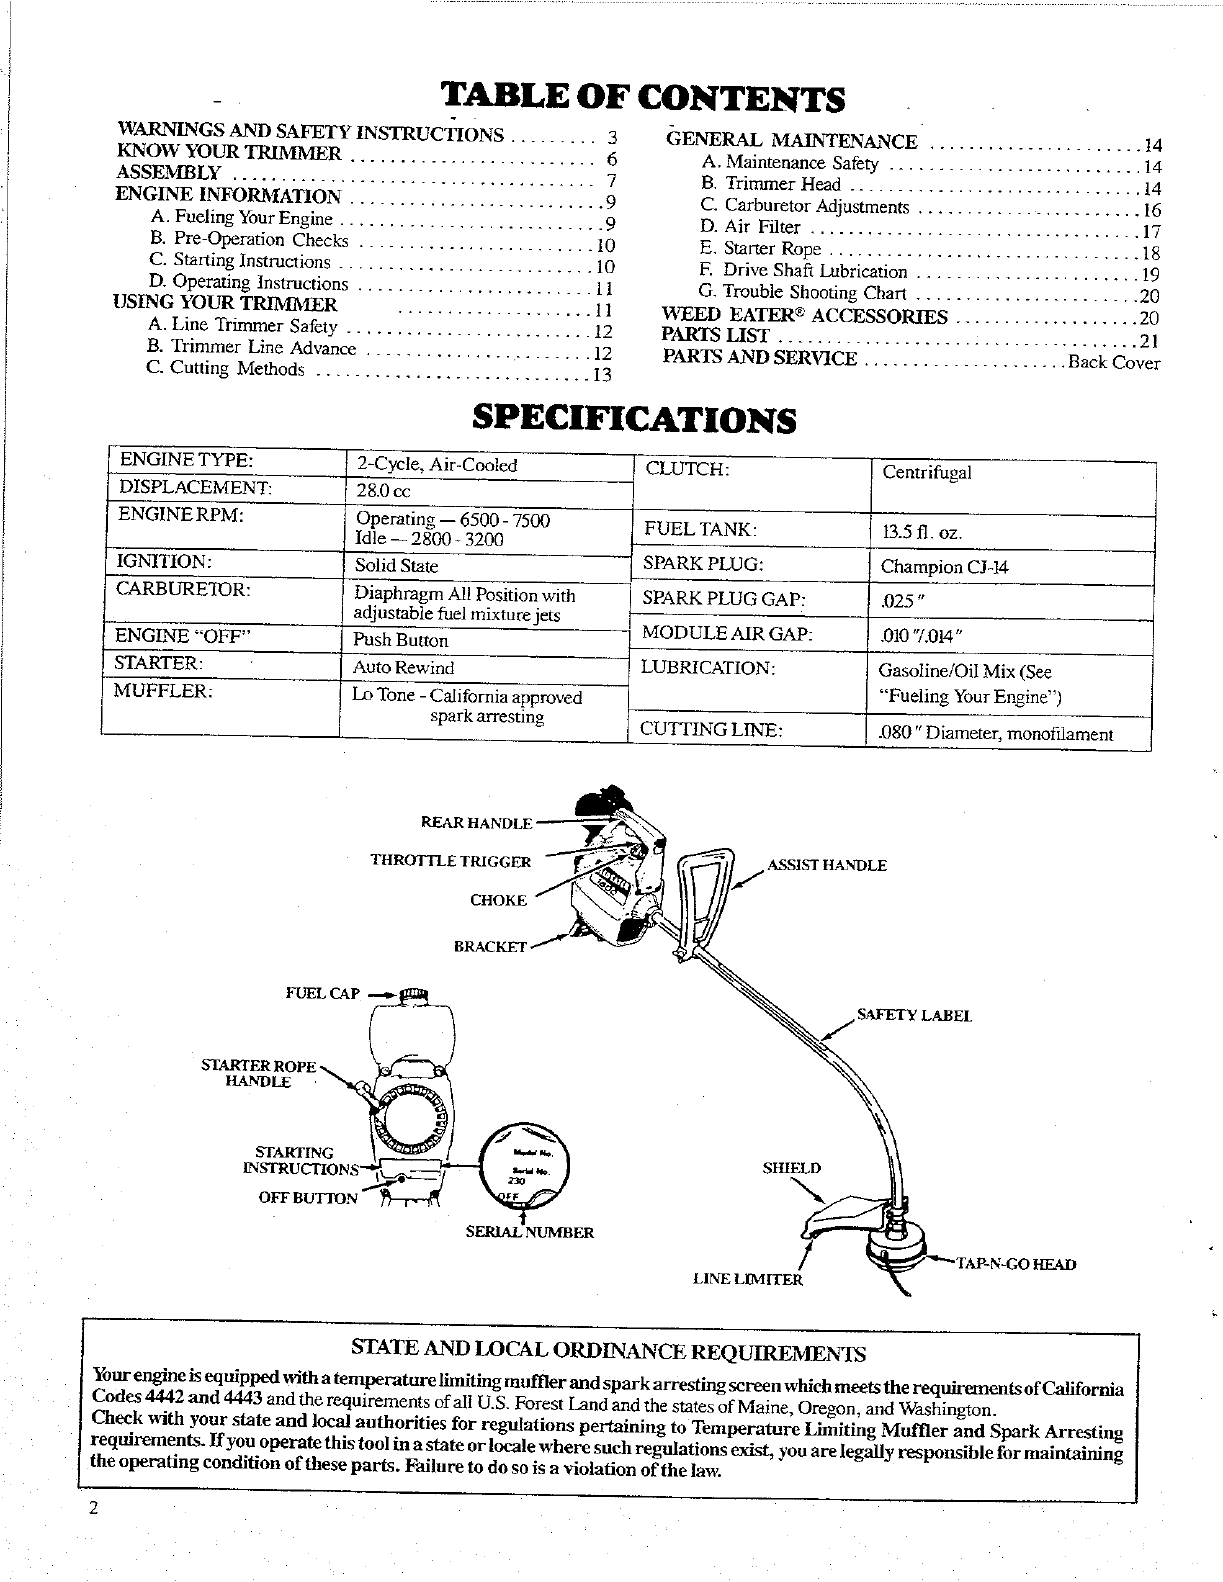 Page 2 of Weed Eater Trimmer 1600 User Guide